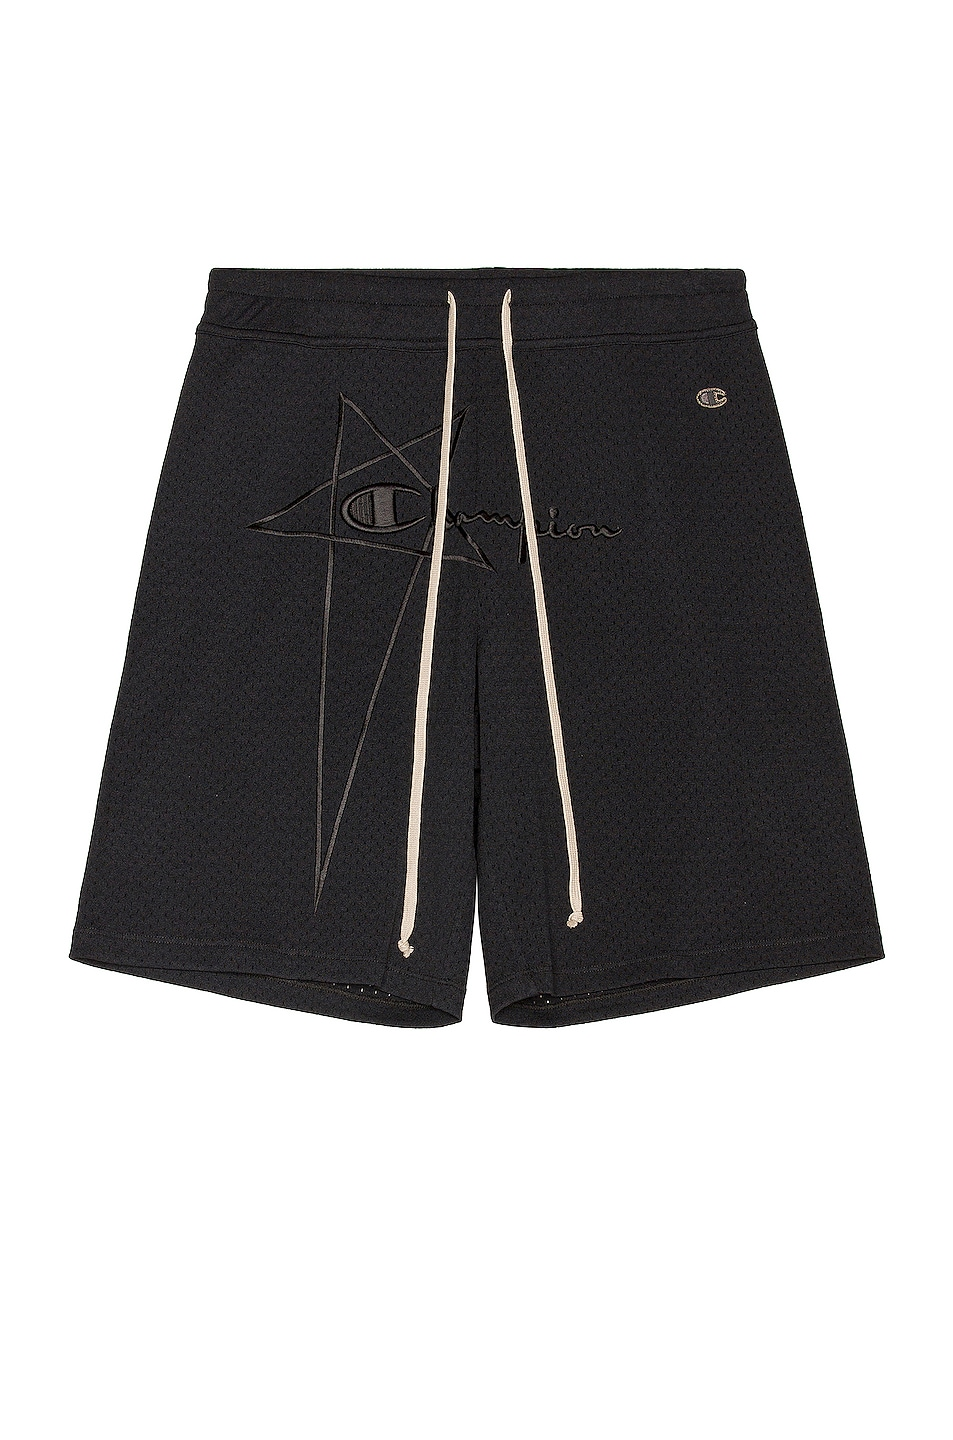 Image 1 of Rick Owens x Champion Classic Mesh Shorts in Black